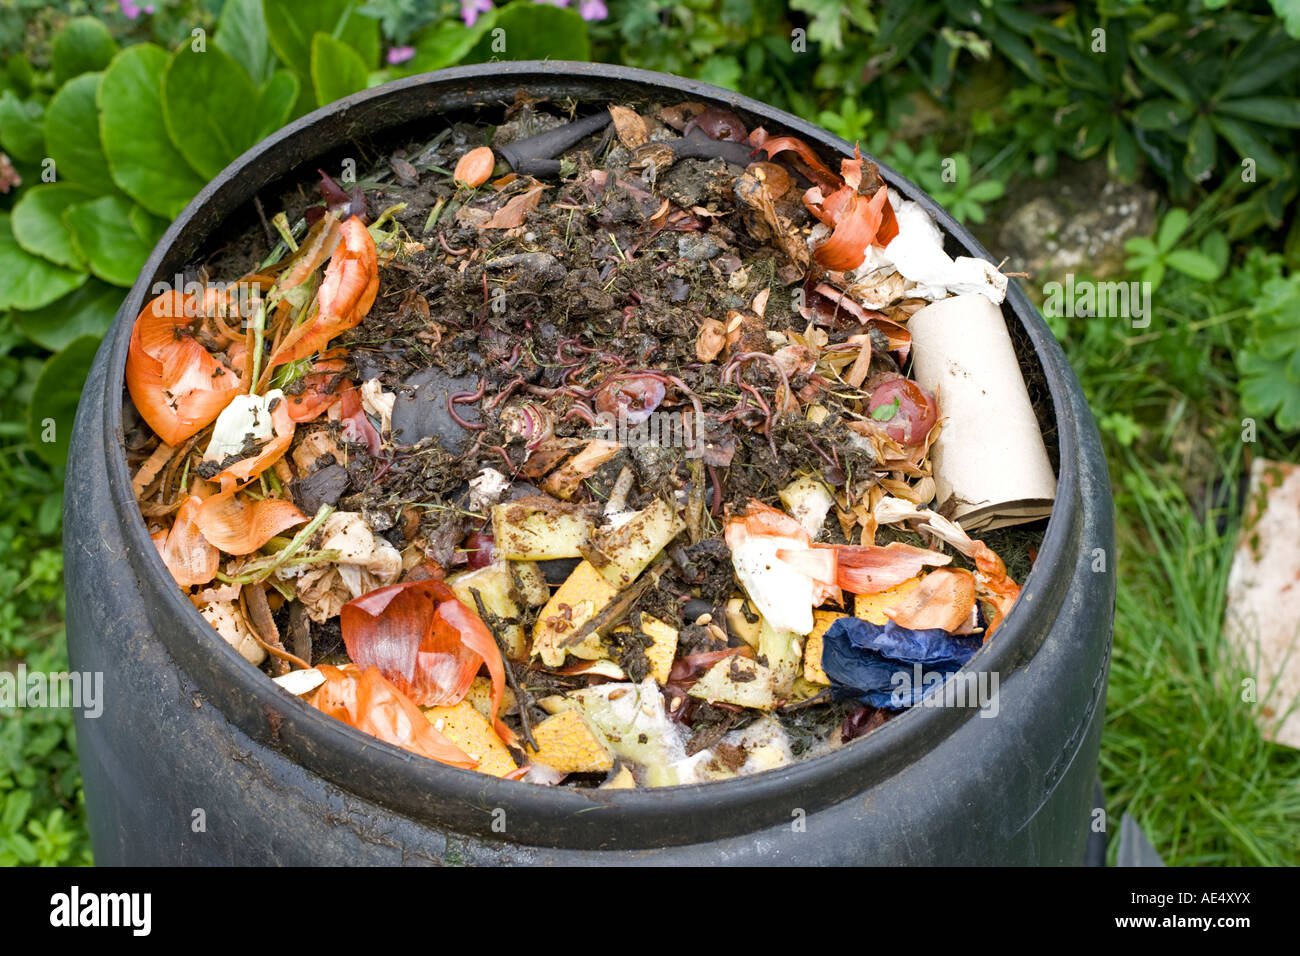 worms visible in kitchen waste in top of black plastic